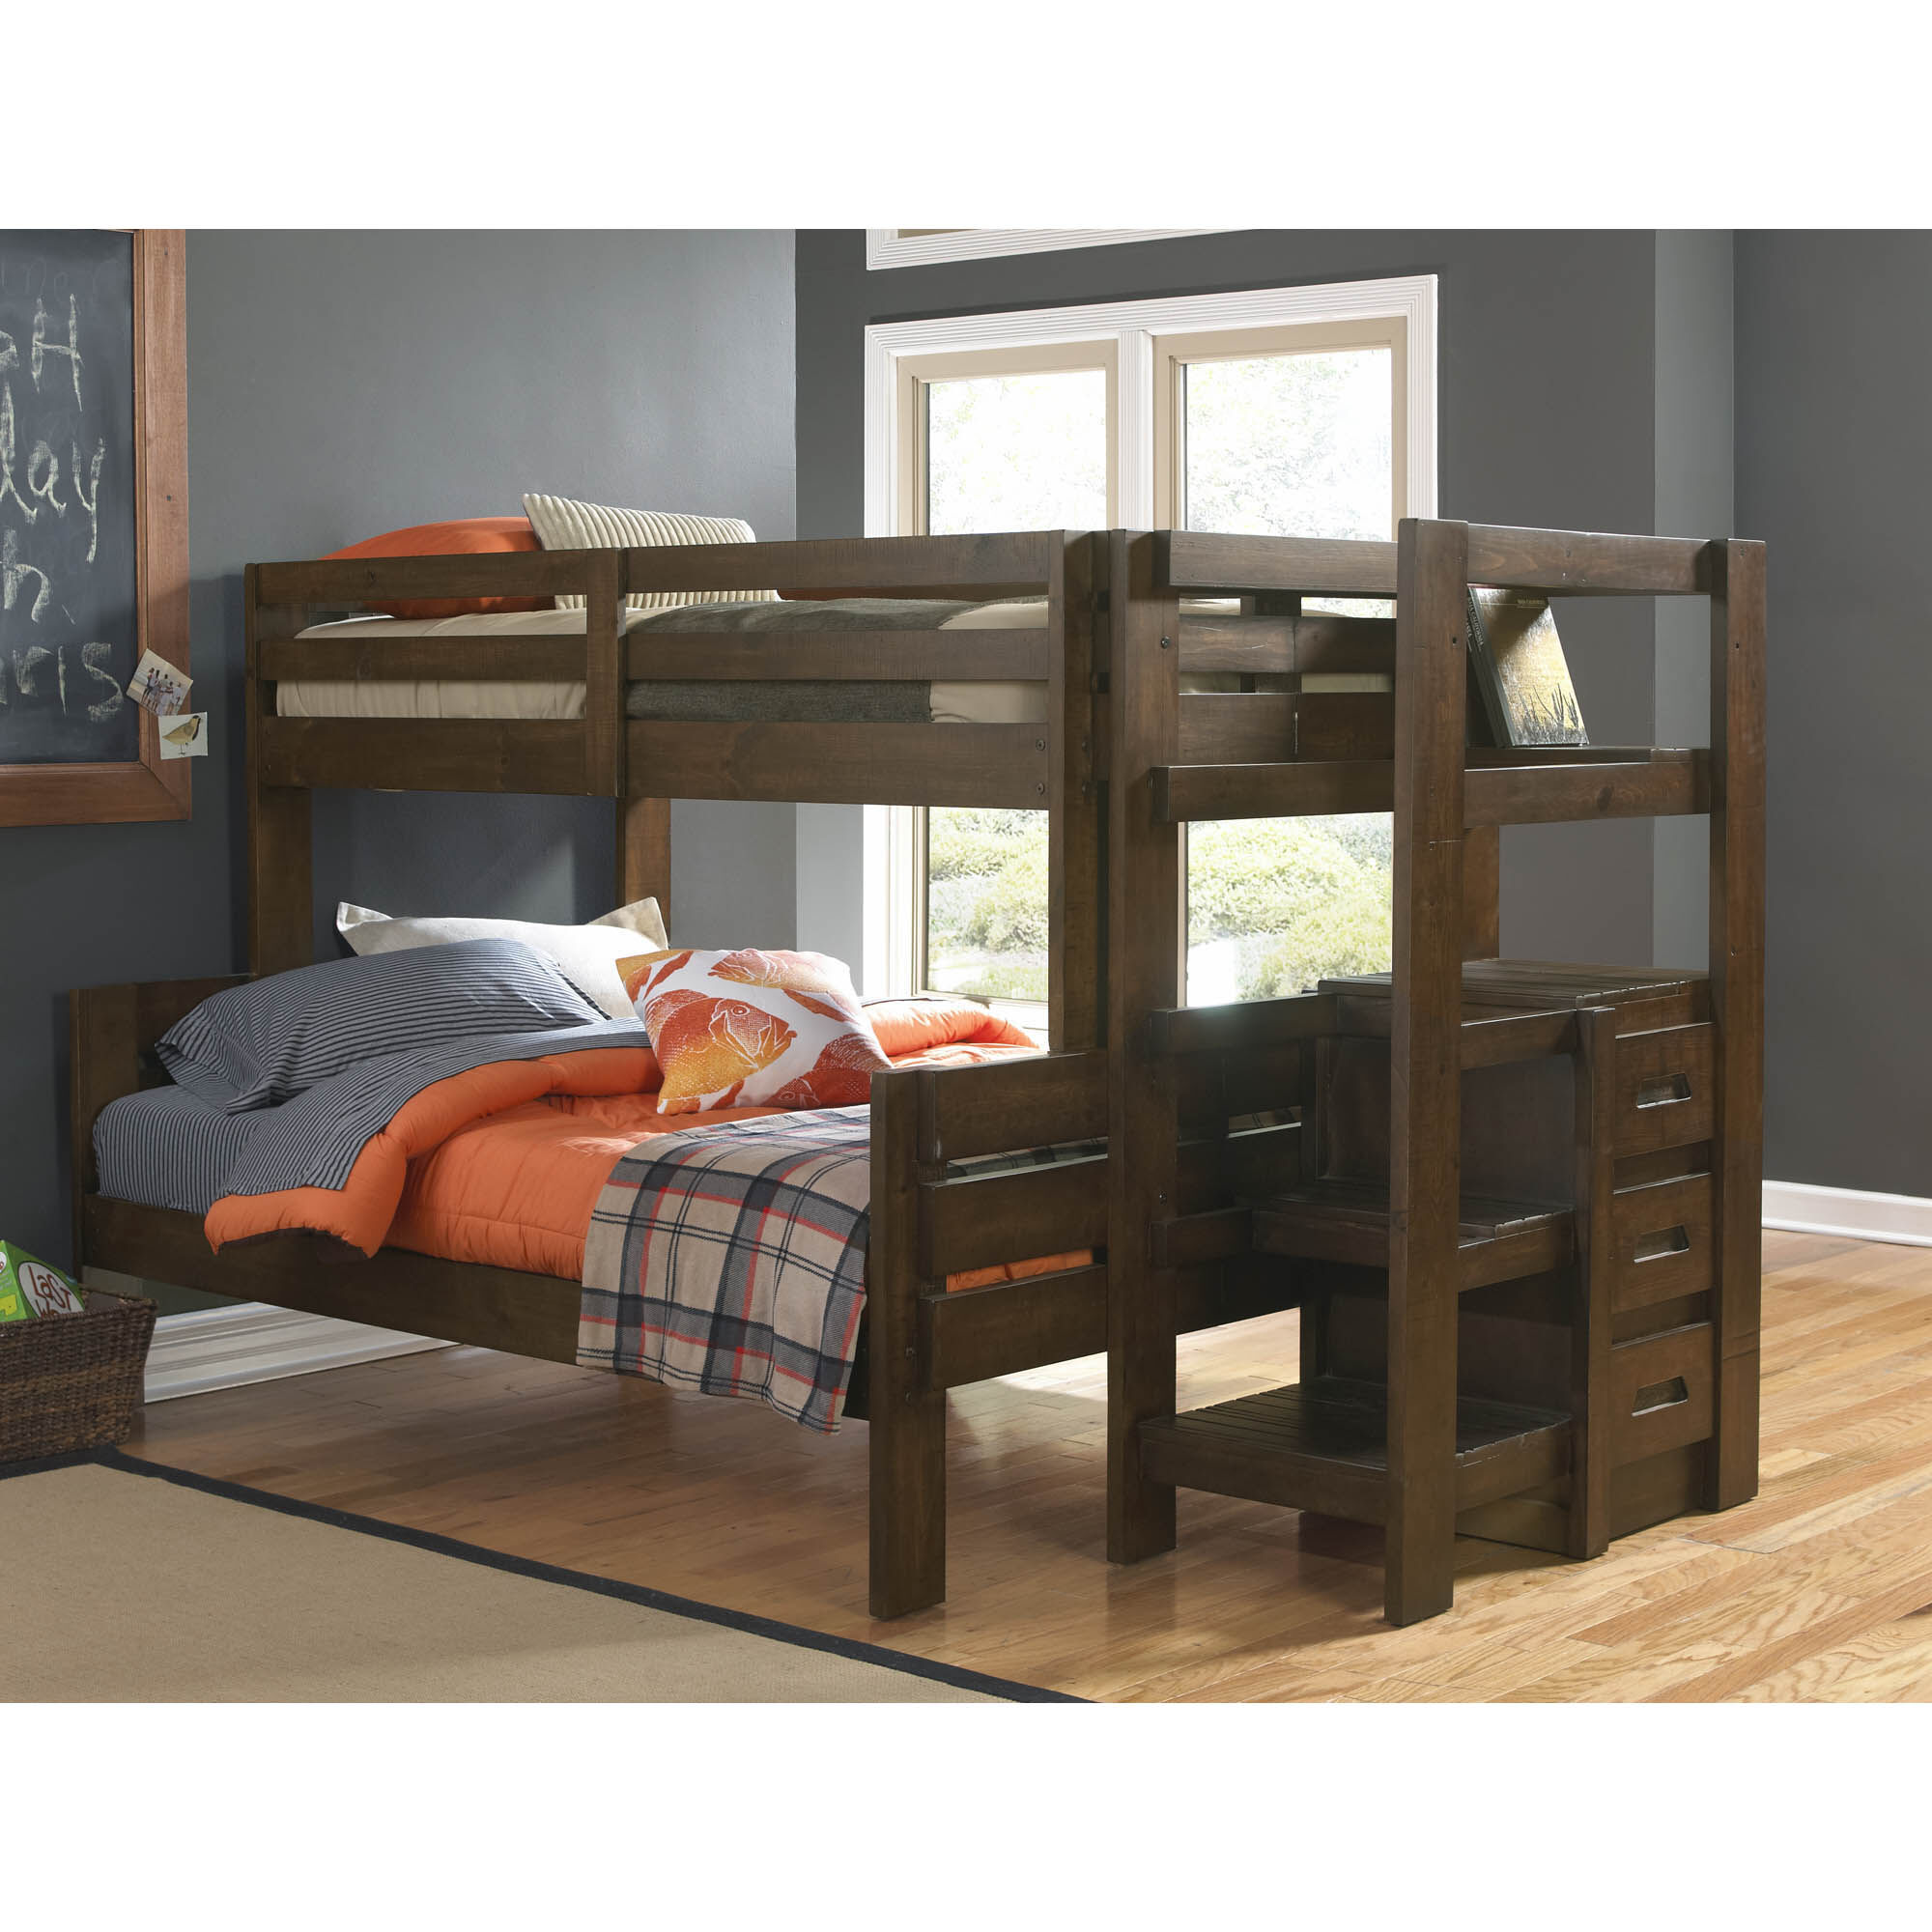 Oak Furniture West Bedroom Groups Twin Plus Full Storage Bunk Bed